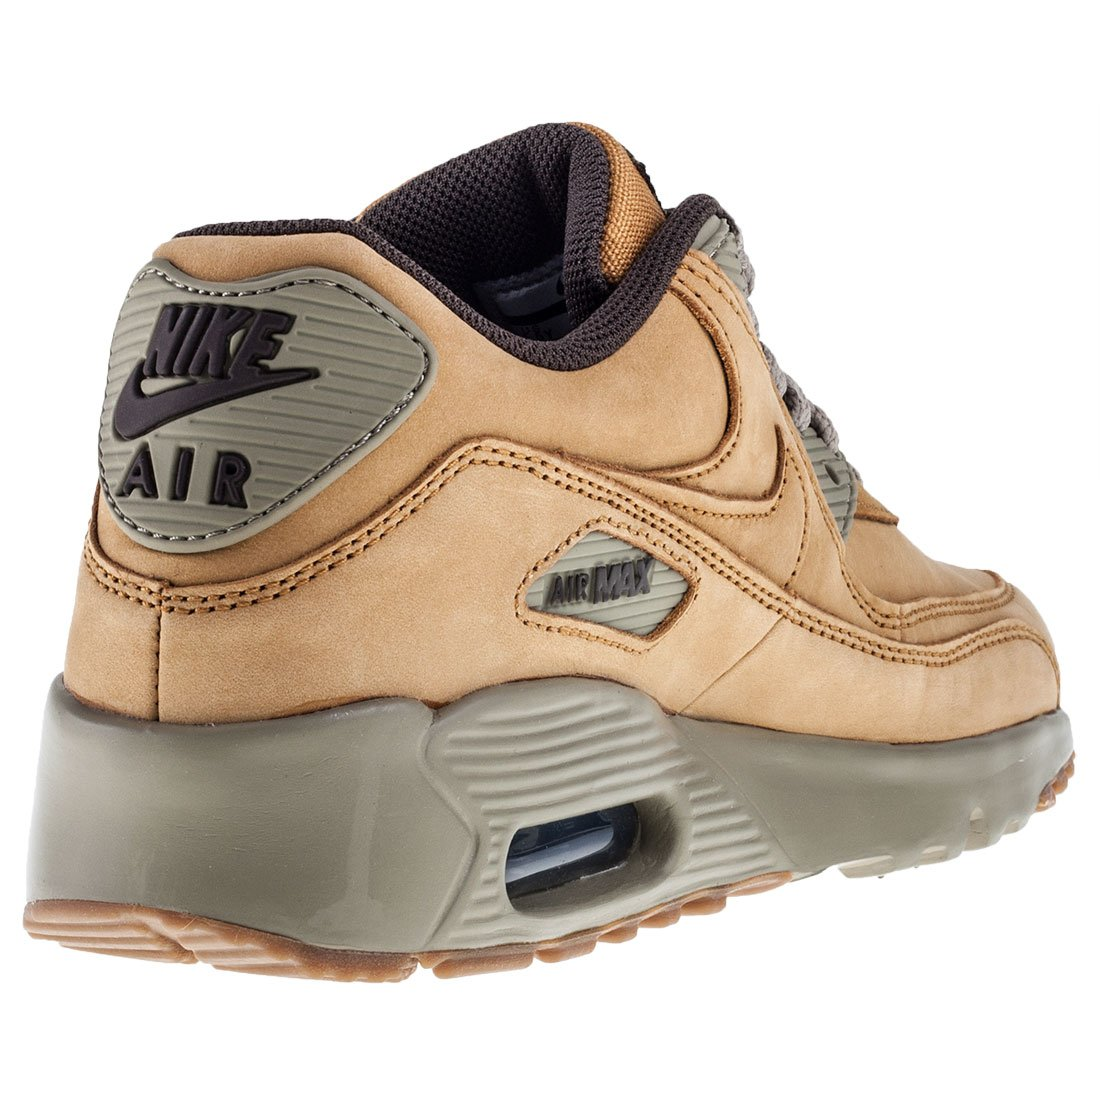 Nike Kids Air Max 90 Gs 943747-700 Trainers Bronze  Amazon.co.uk  Shoes    Bags 07b04feba